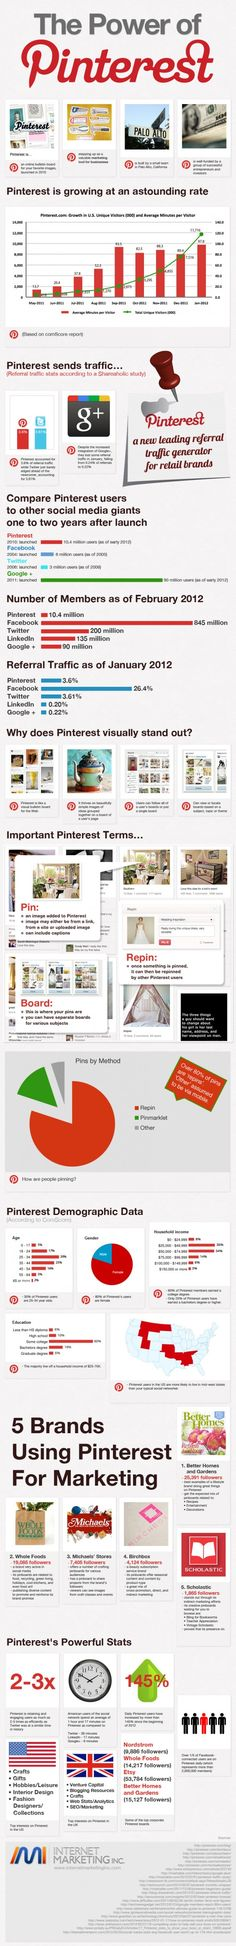 Infographic: The Power of Pinterest /